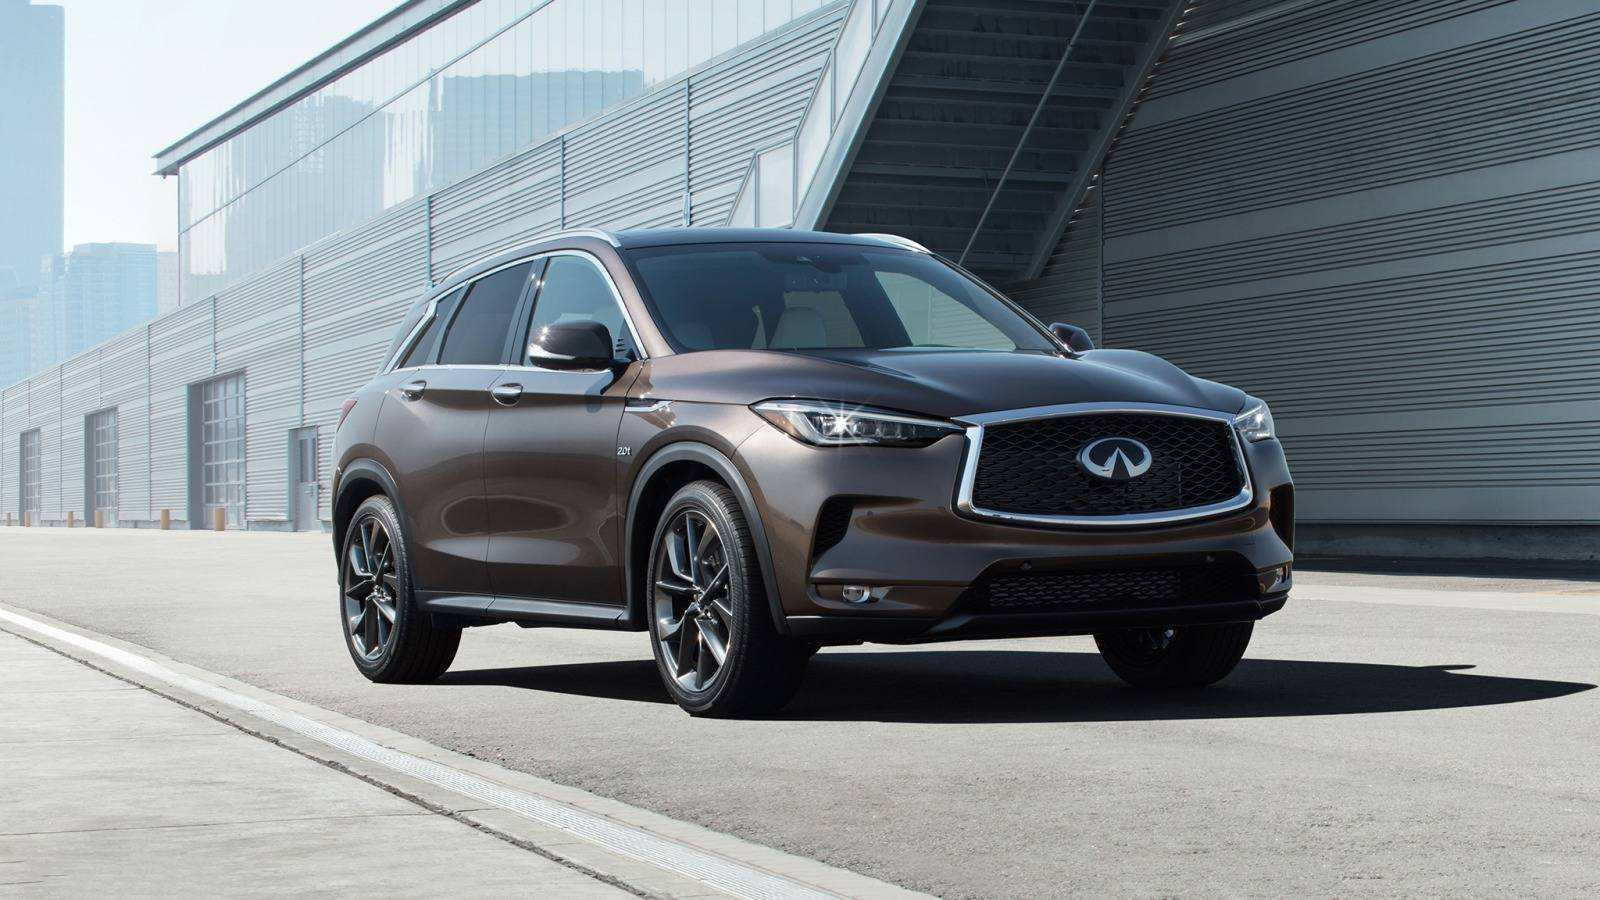 60 Gallery of New 2019 Infiniti Qx50 Fuel Economy Review Specs and Review by New 2019 Infiniti Qx50 Fuel Economy Review